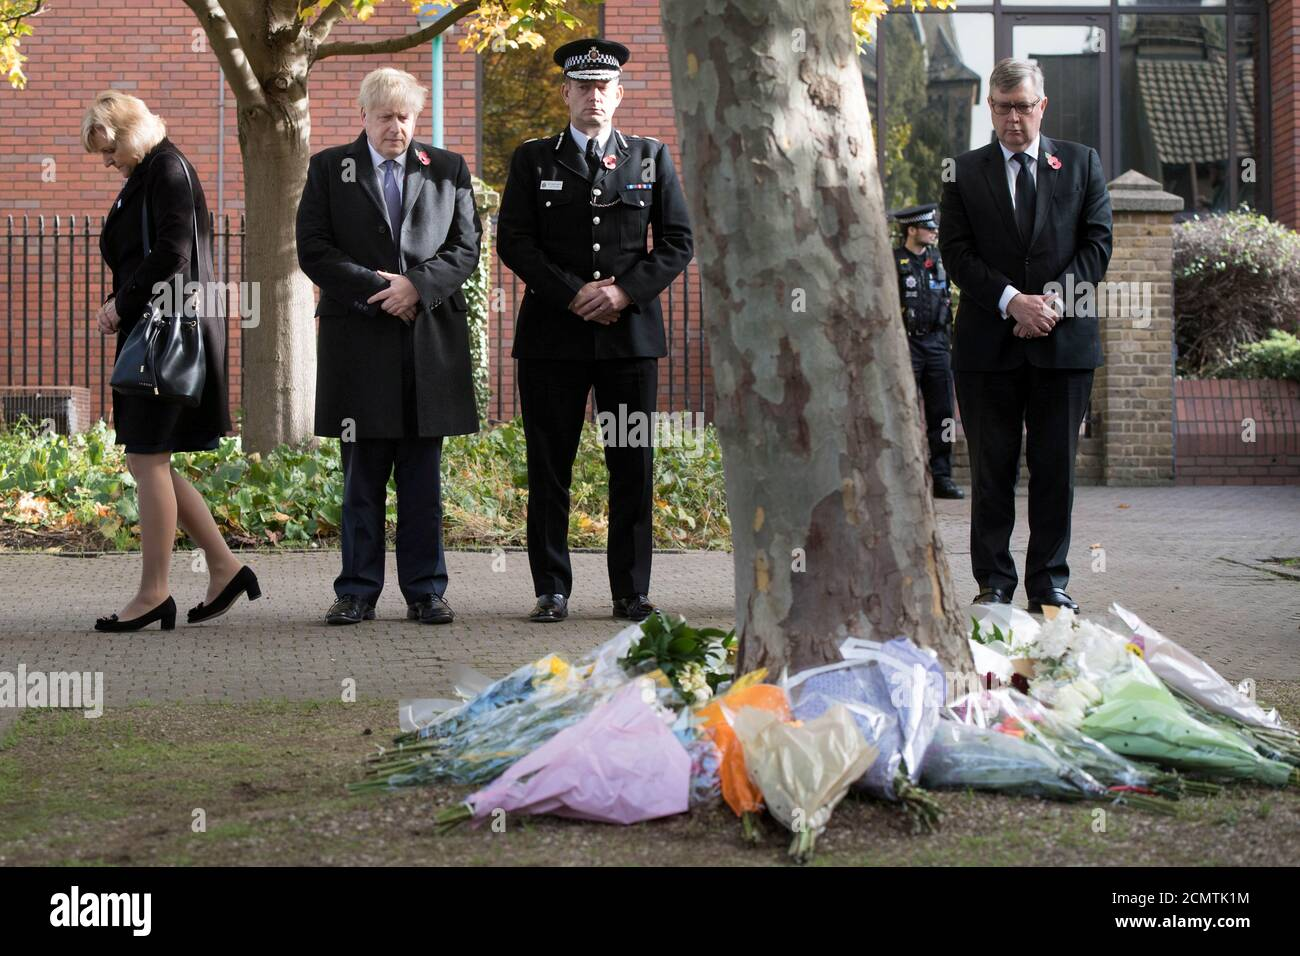 Prime Minister Boris Johnson stands with the Chief Constable of Essex Police, Ben-Julian Harrington, after laying flowers during a visit to Thurrock Council Offices in Grays, Britain, October 28, 2019. Stefan Rousseau/Pool via REUTERS Stock Photo